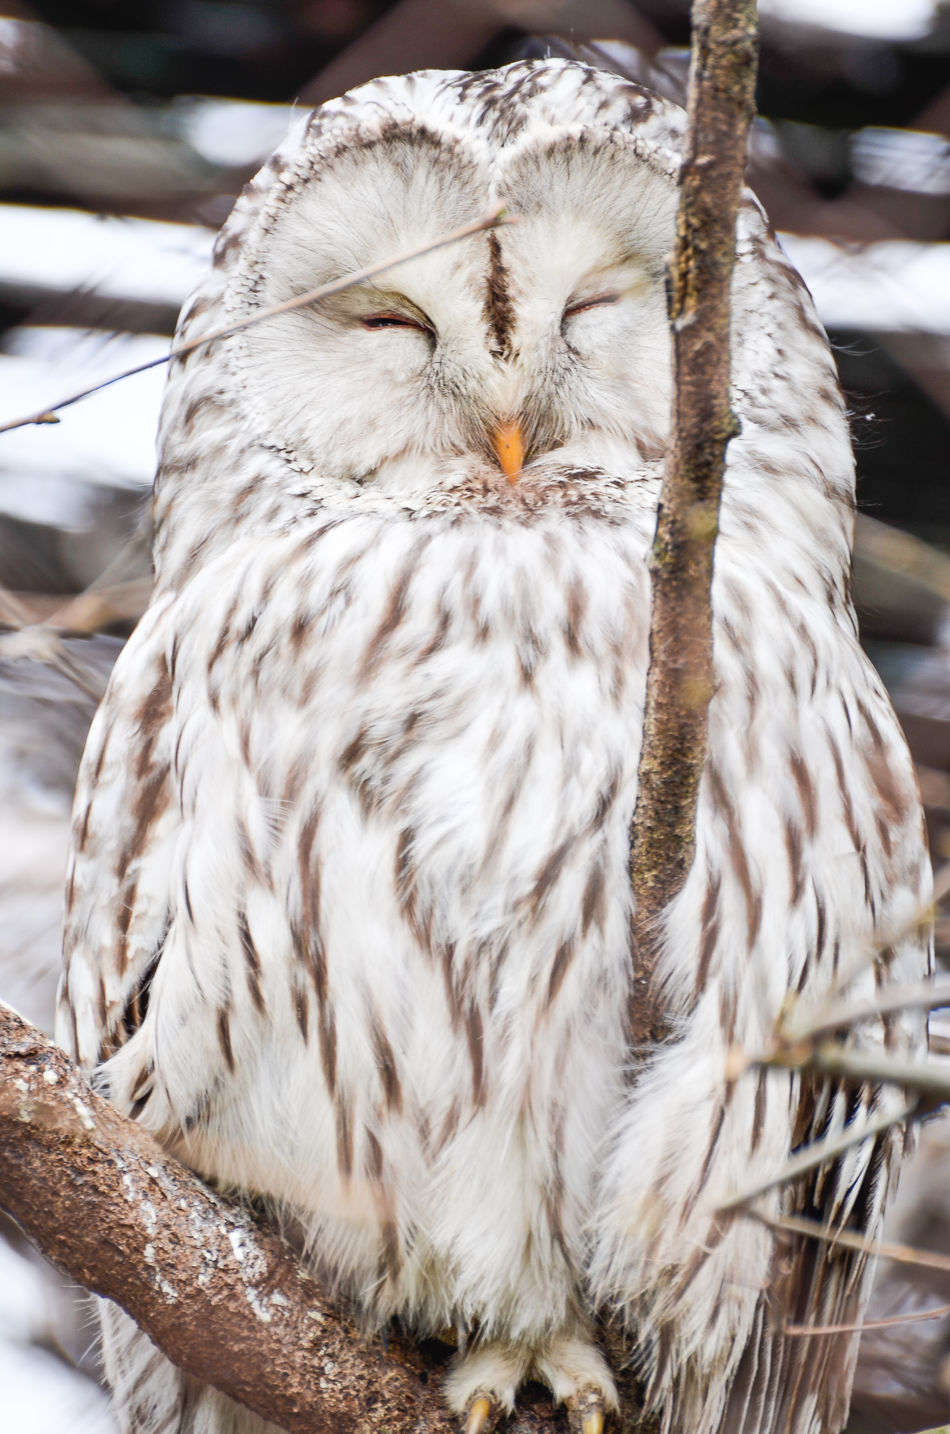 Bubo scandiacus - Snowy Owl is peacefully standing on a rock Animal Themes Bird Bubo Scandiacus Close-up Day Nature No People One Animal Outdoors Owl Snow Snowy Snowy Owl Tree White Wild Wildlife Winter